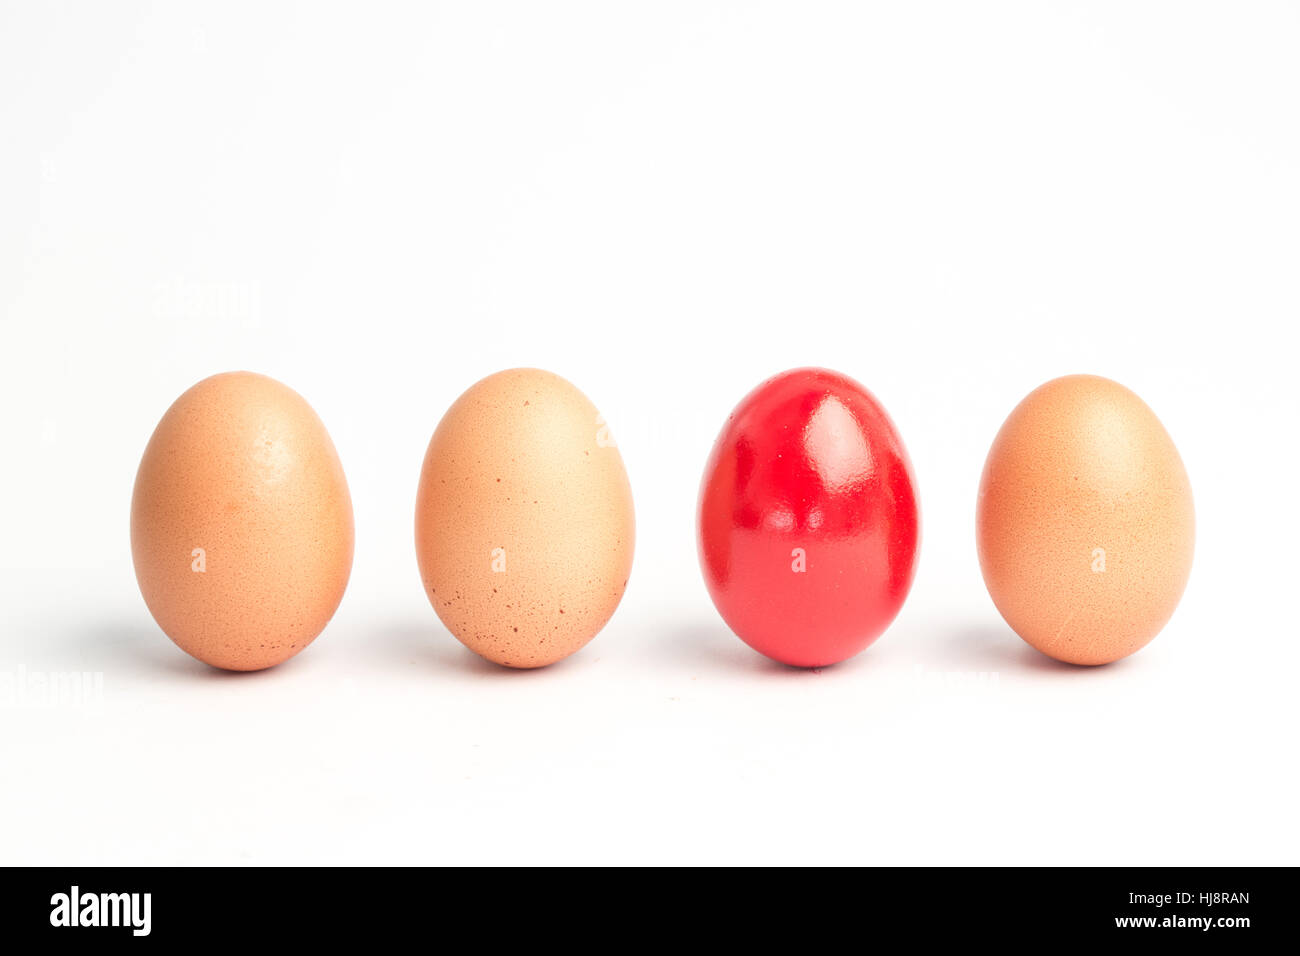 Four eggs in a row with one red one on white background - Stock Image